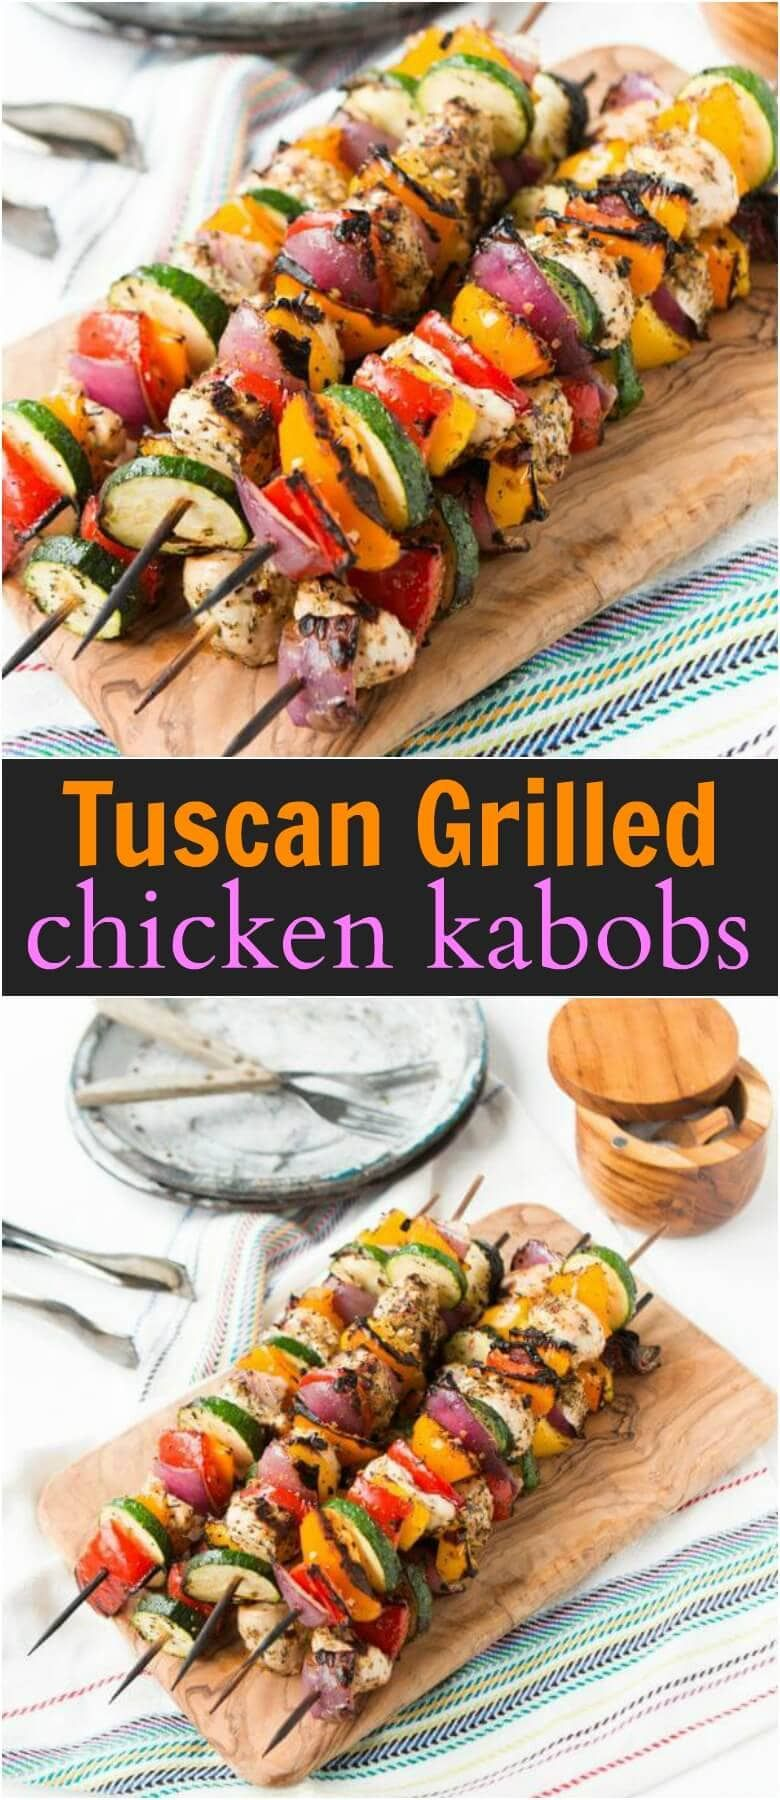 Tuscan Grilled Chicken Kabobs - Oh Sweet Basil